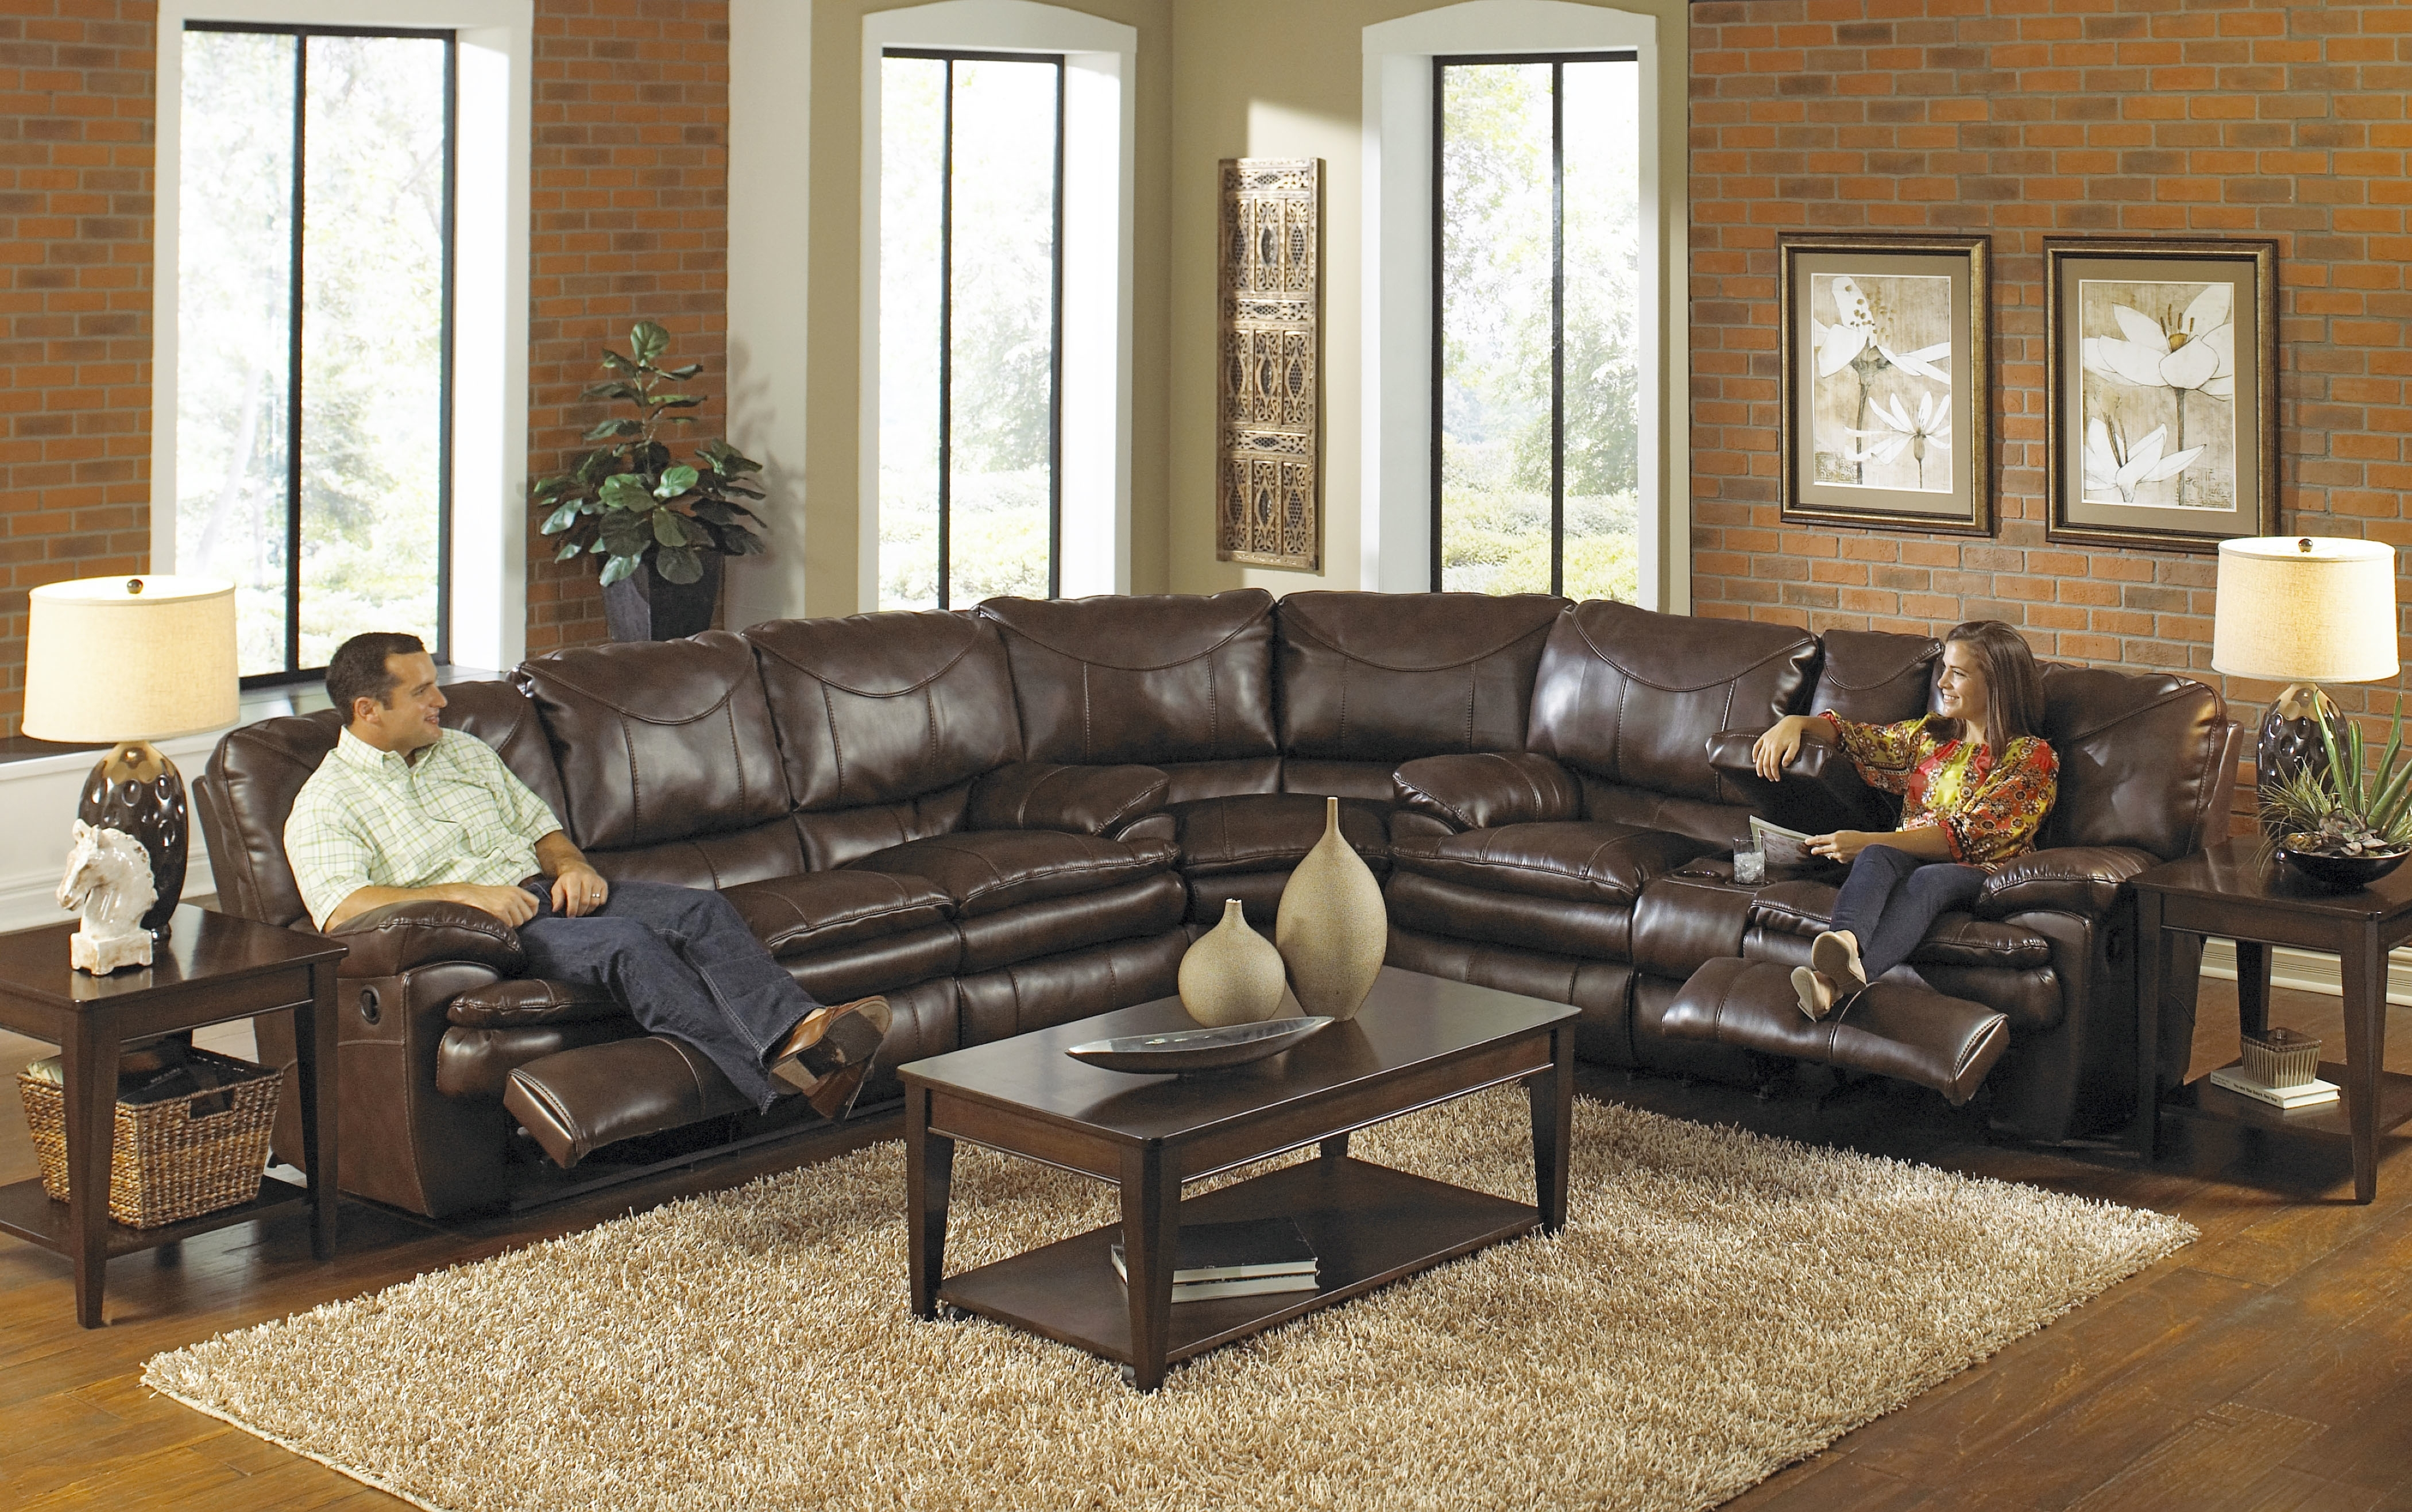 High Quality Leather Sectional Sofas – Radiovannes For High End Leather Sectional Sofas (Image 4 of 10)